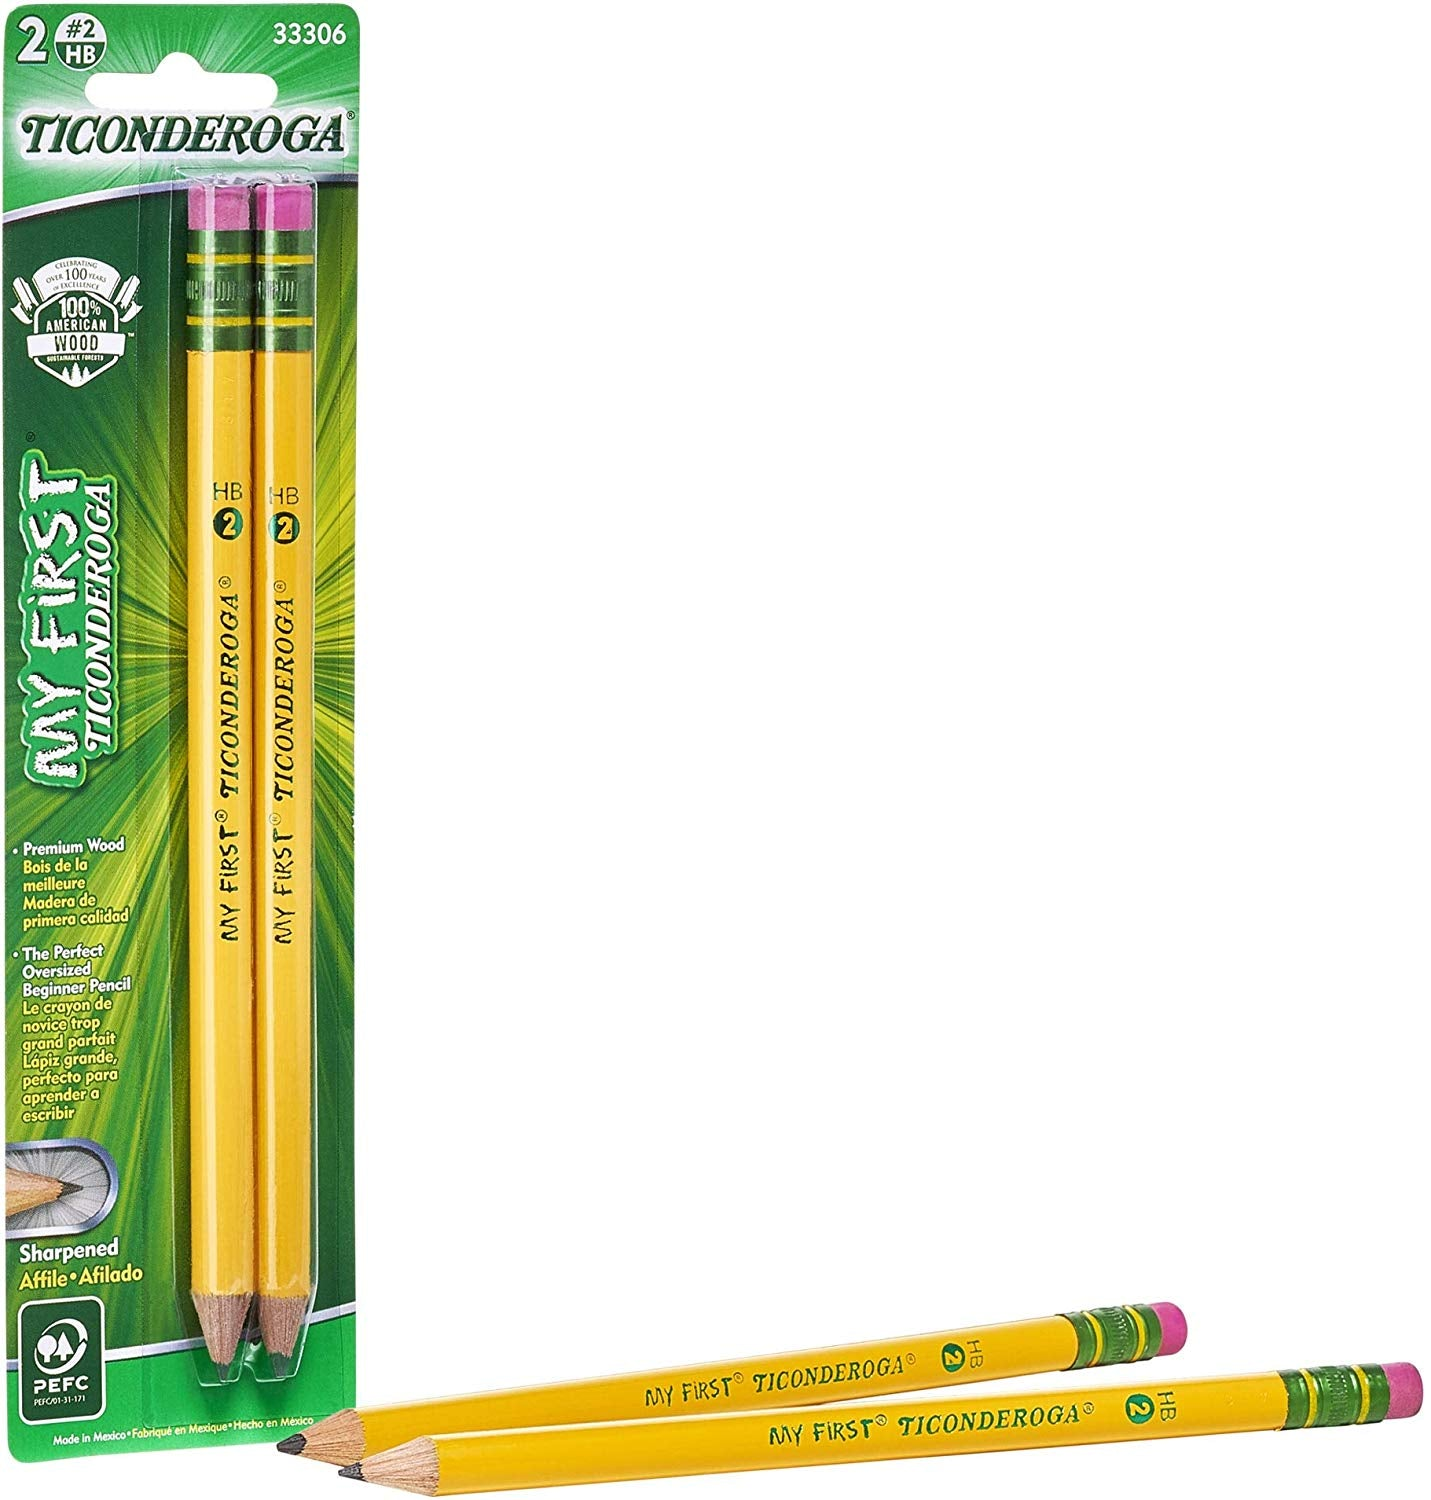 My First Ticonderoga #2 Beginner Pencils, 2 Pack (33306)